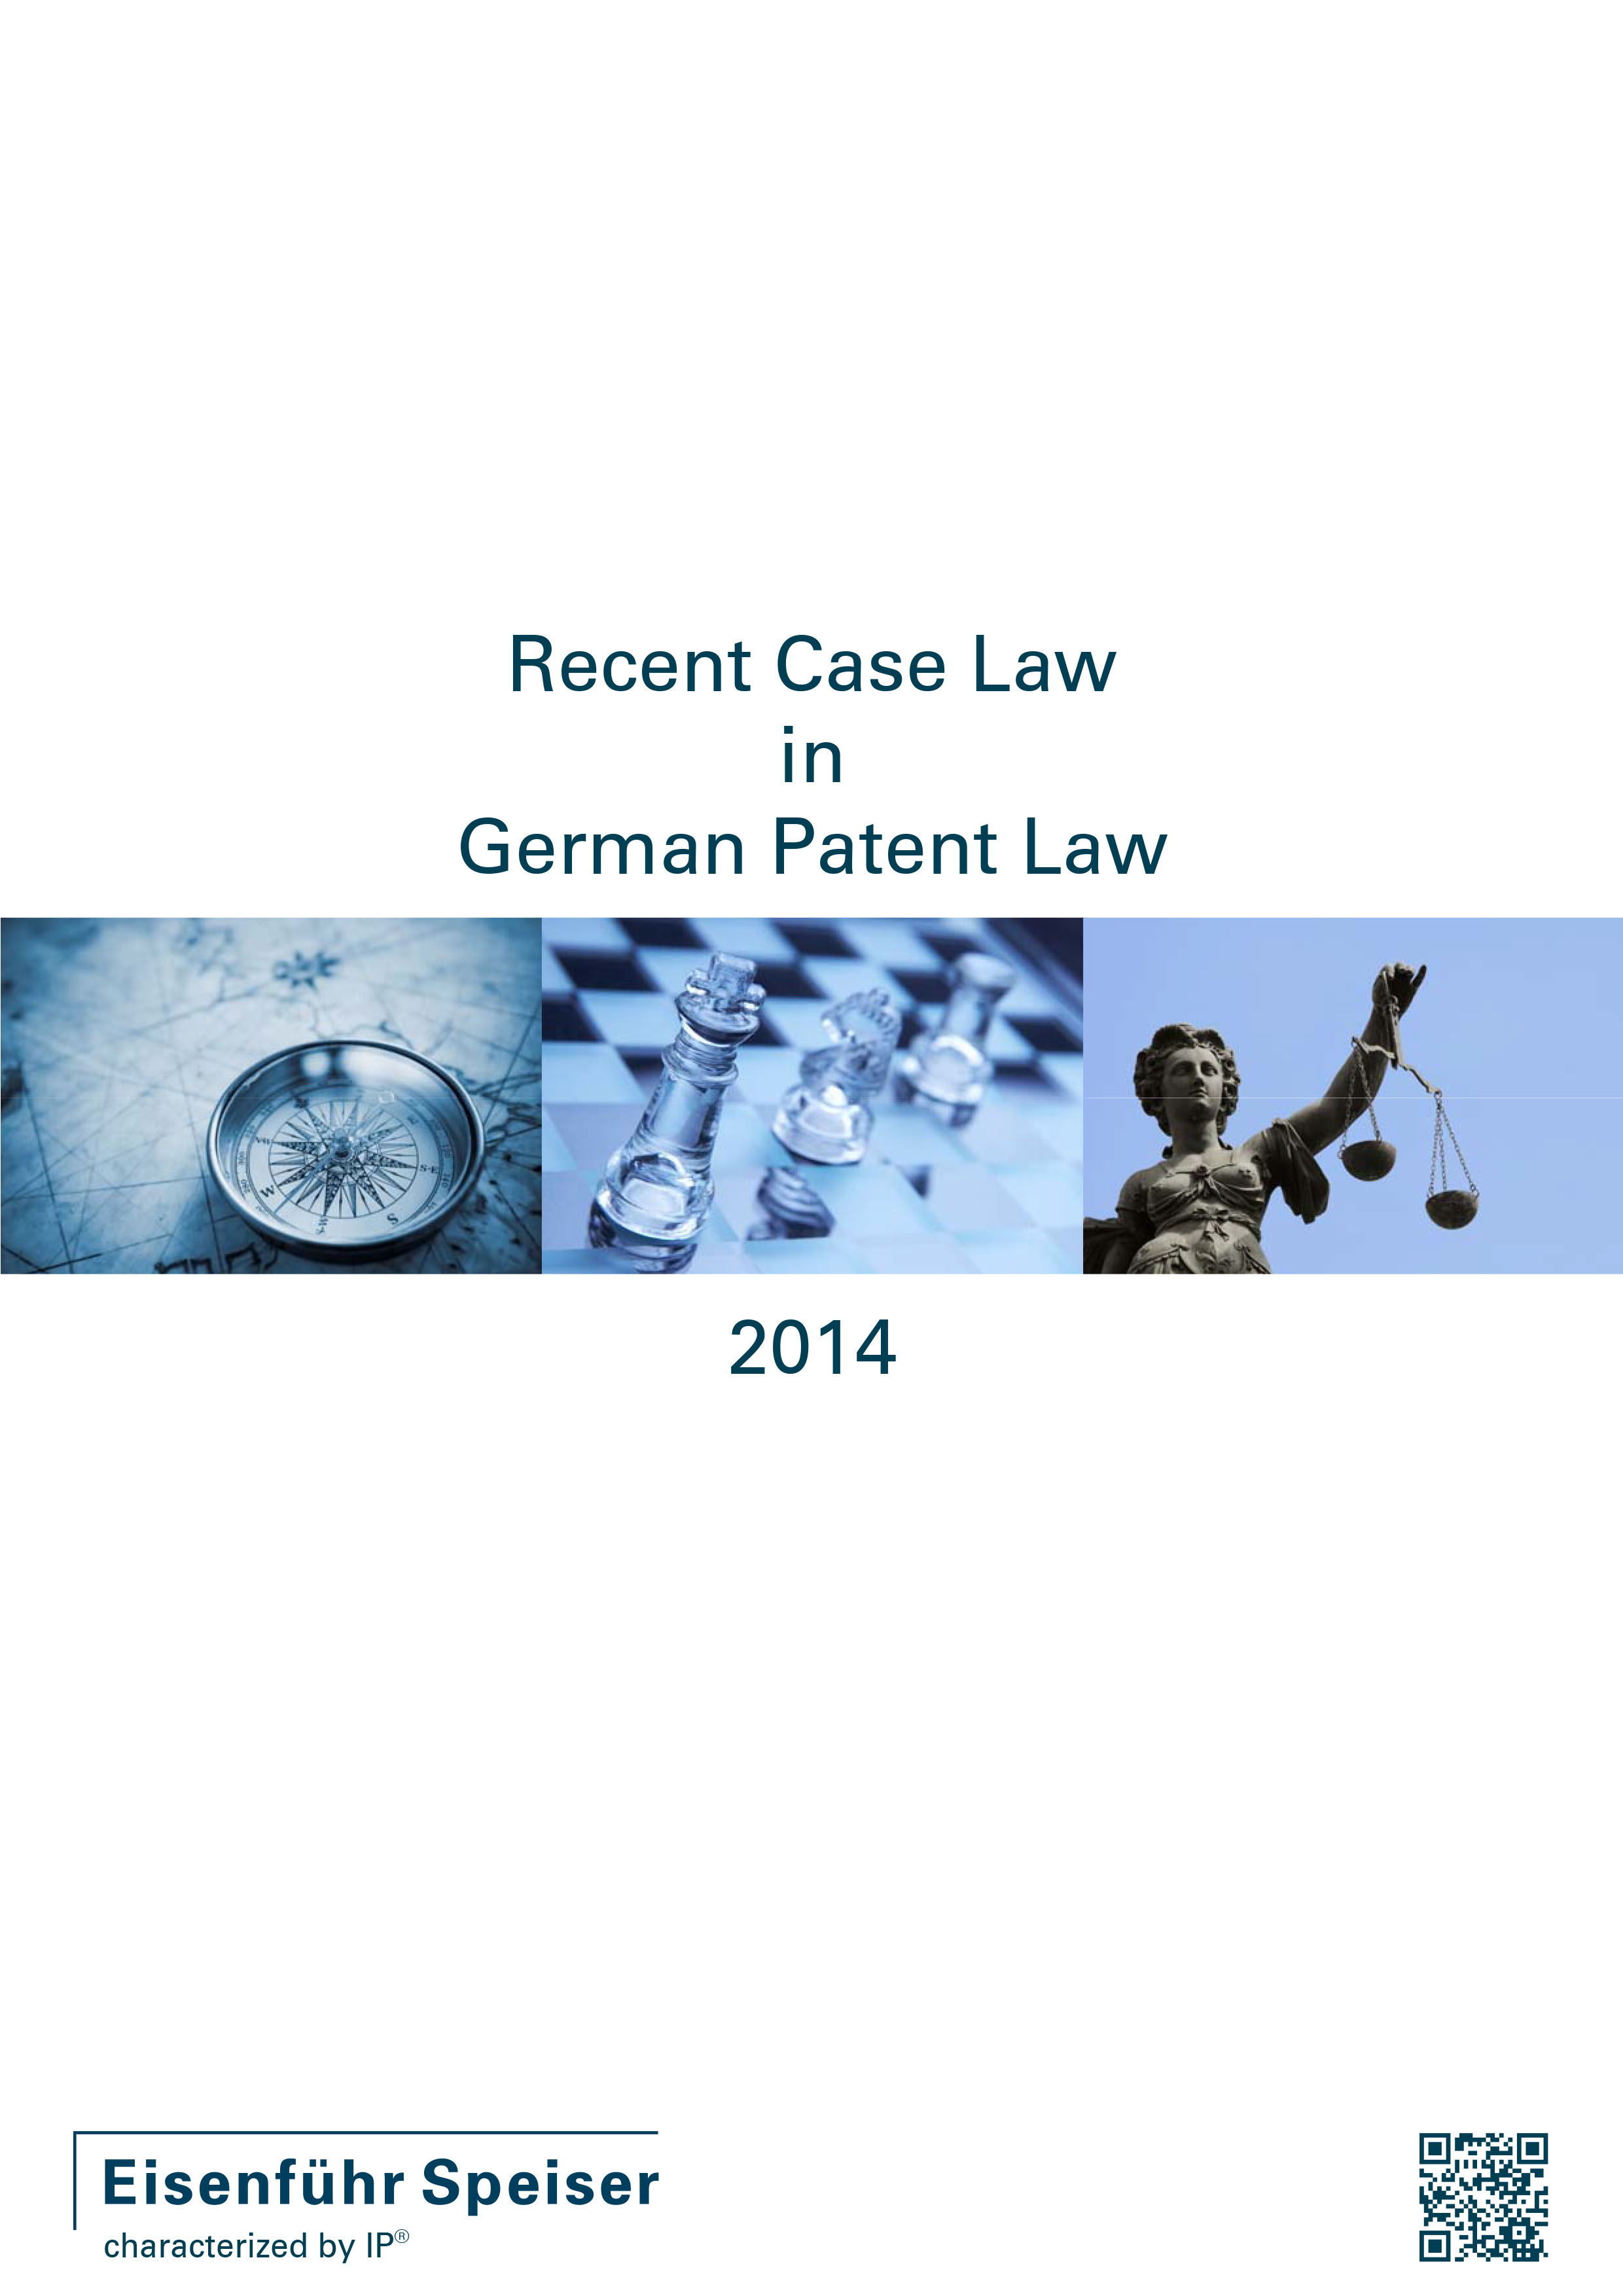 Recent Case Law in German Patent Law 2014